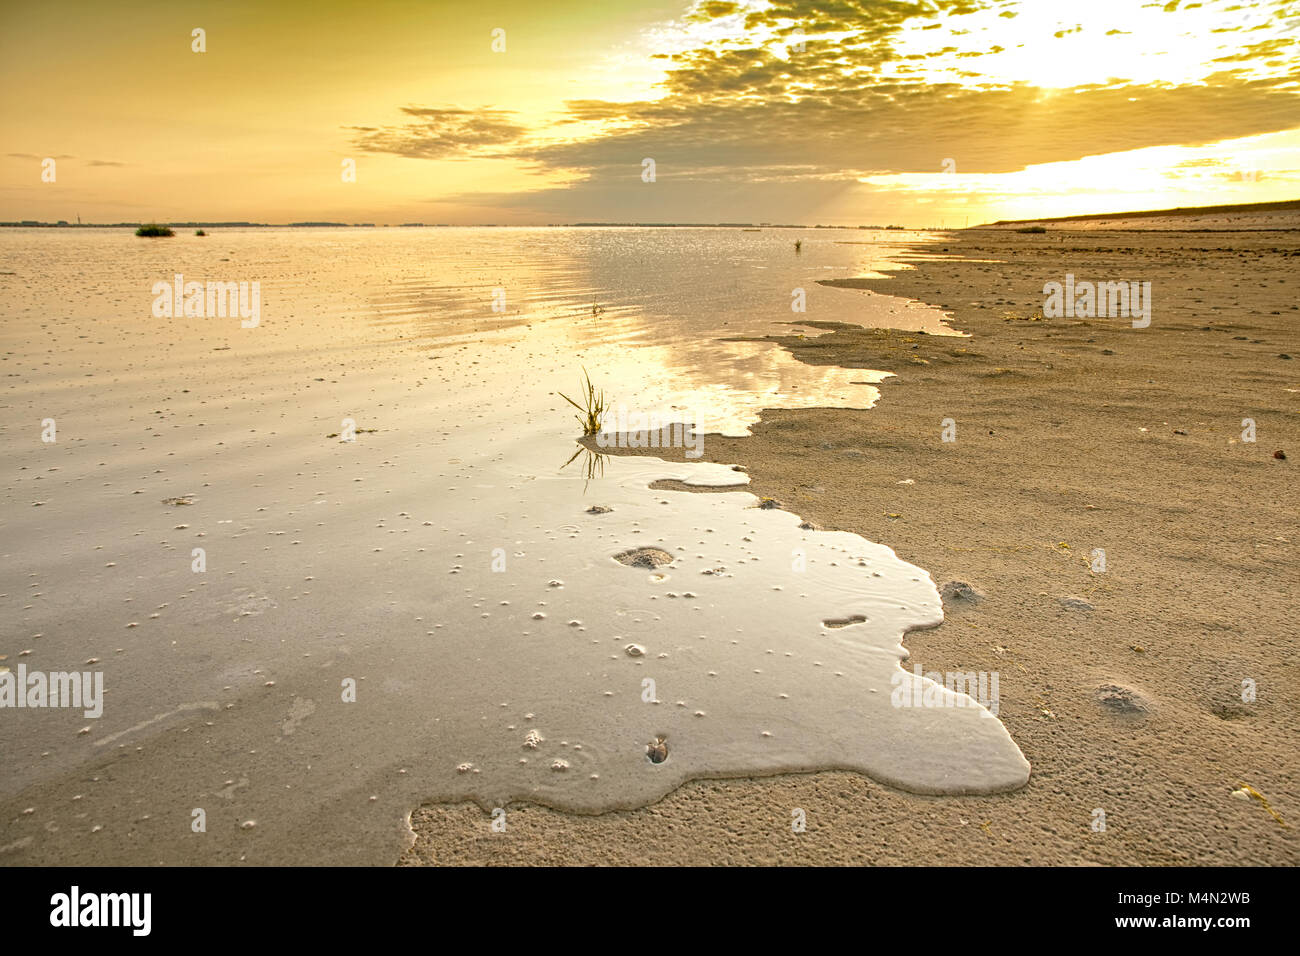 The upcoming tide floods parts of the beach of the island Tholen in Zeeland, the Netherlands - Stock Image